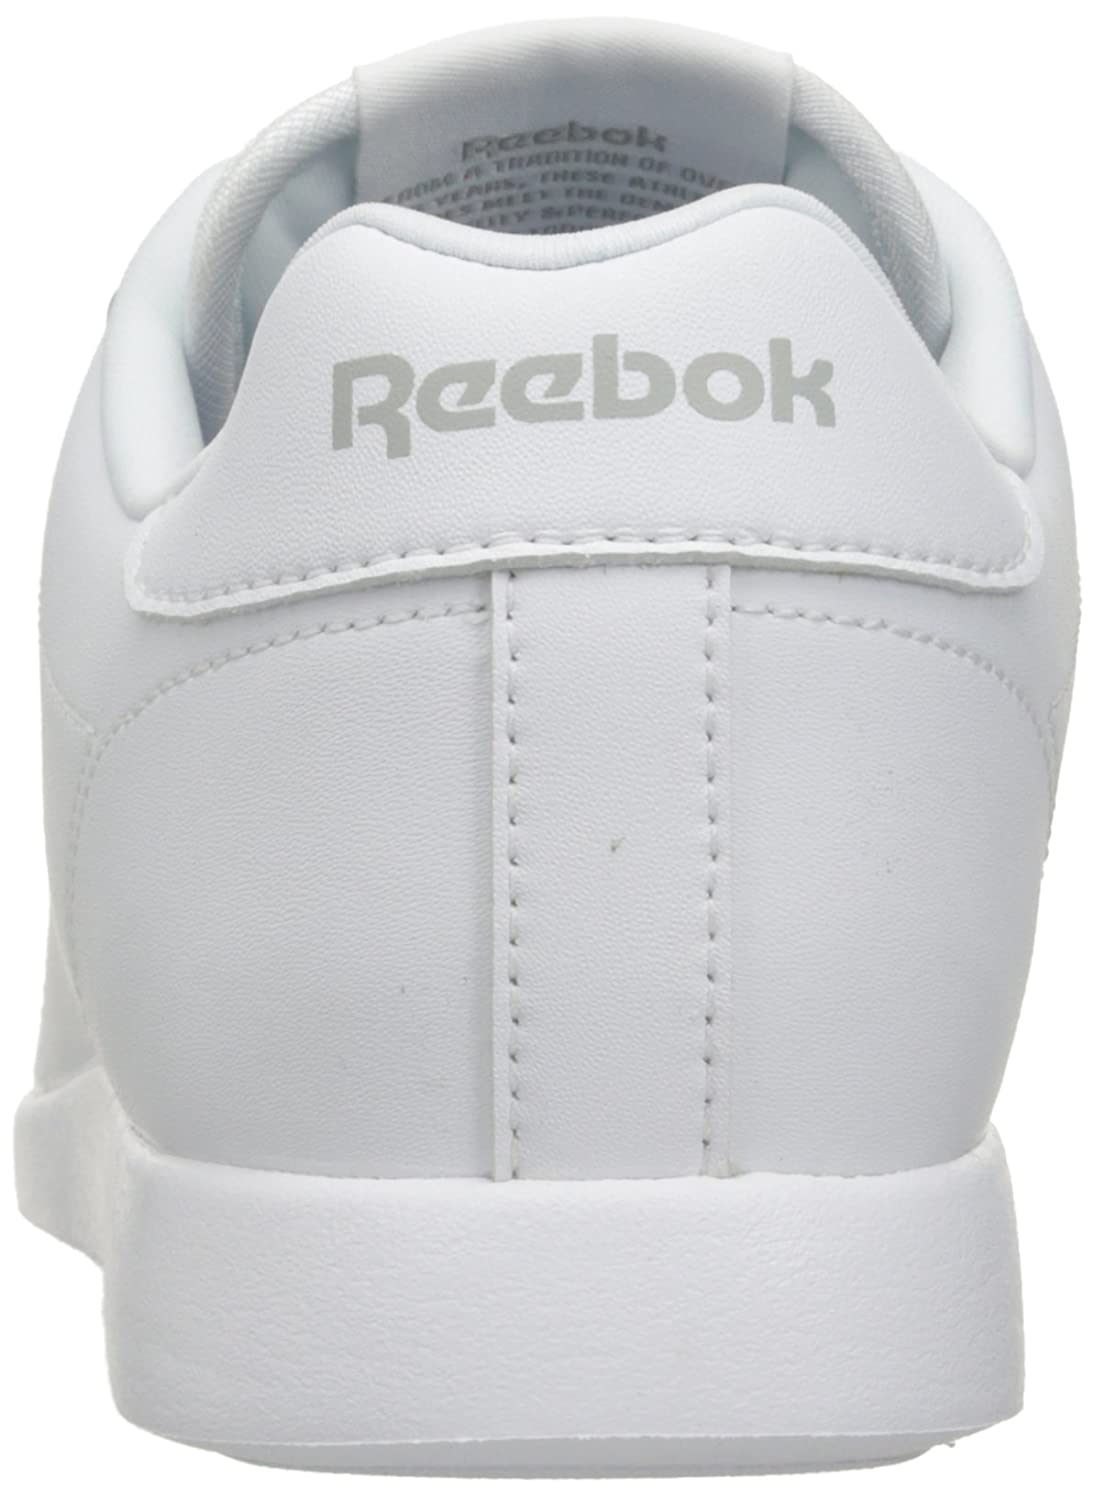 a69296dad552 Reebok Women s Princess Lite Fashion Sneaker  Amazon.co.uk  Shoes   Bags